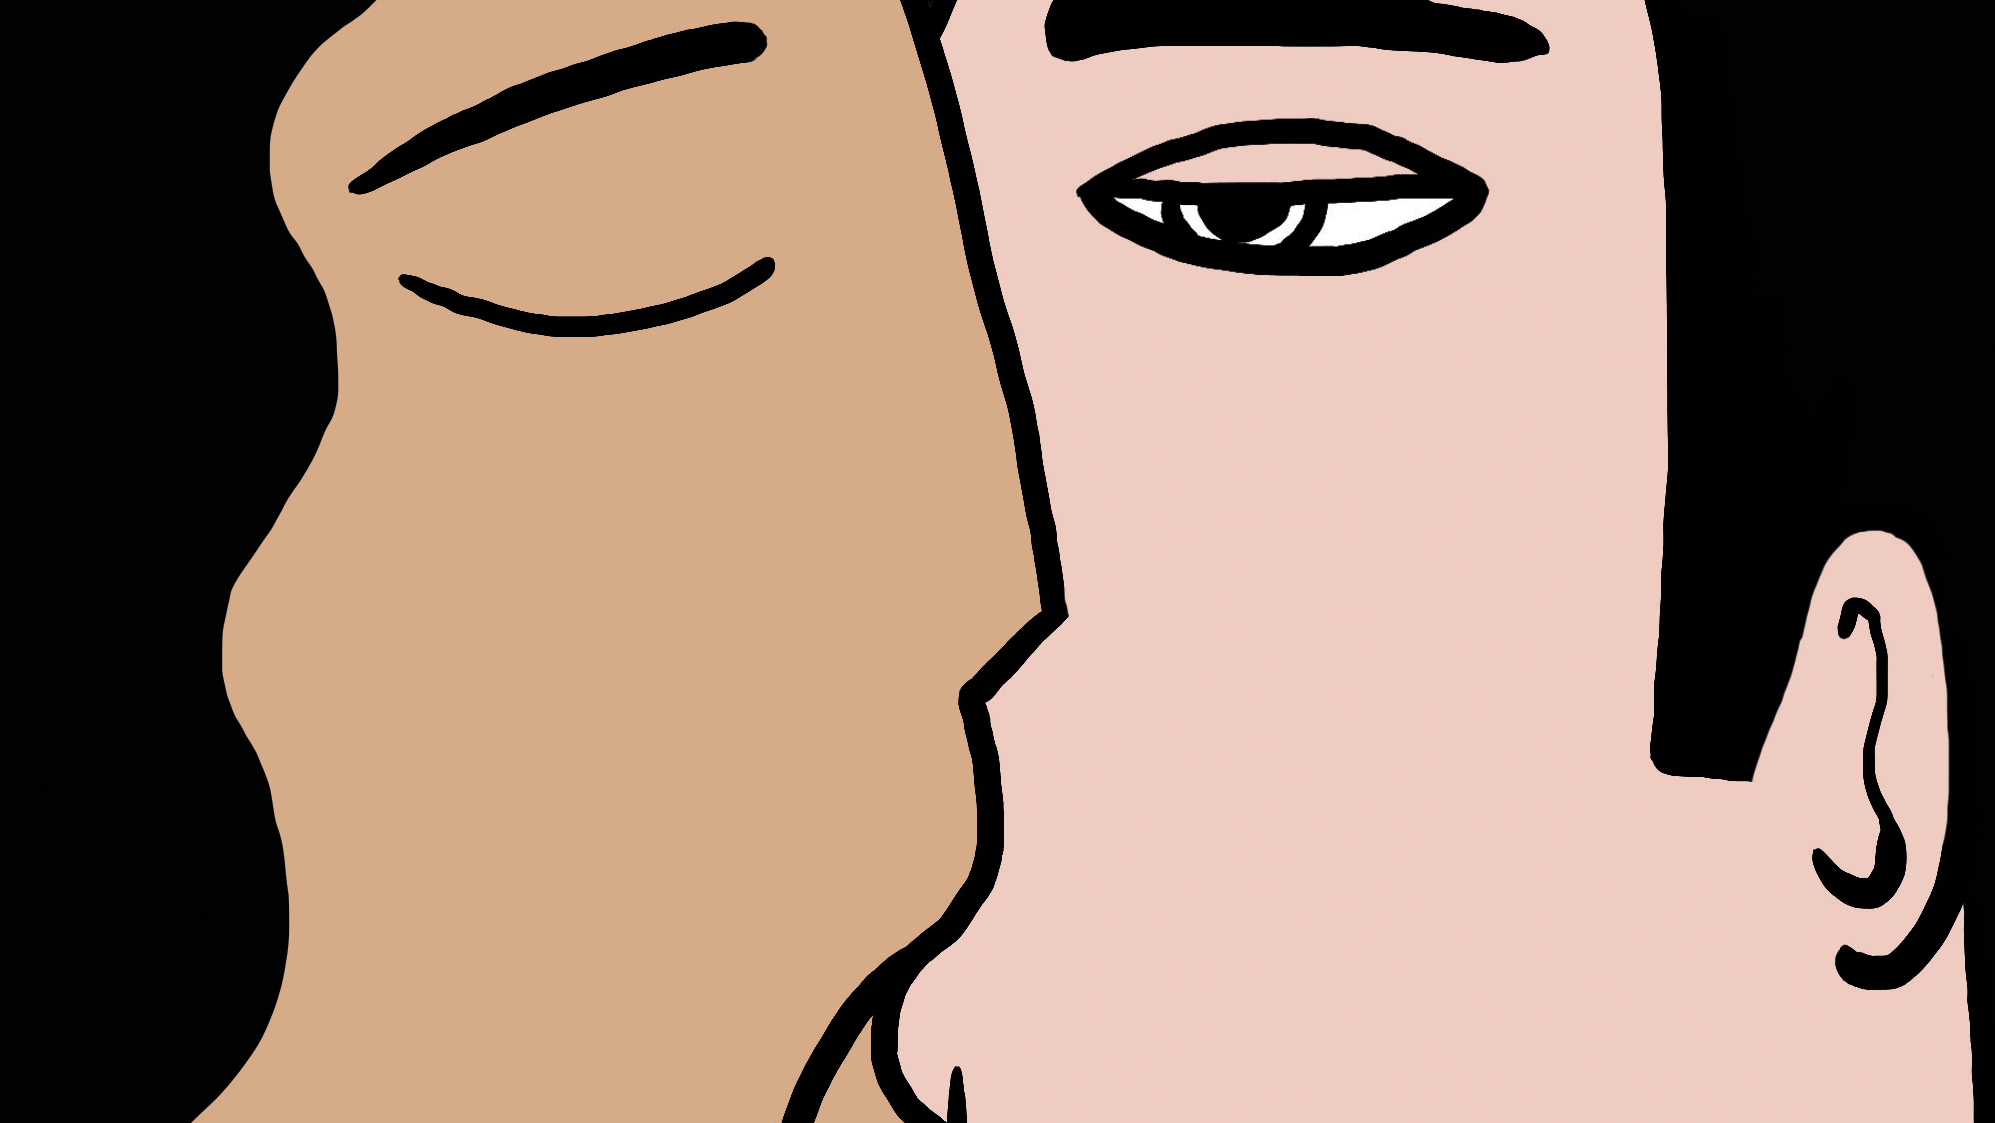 Let Us Sex-plain: My boyfriend kisses with his eyes open and it freaks me out